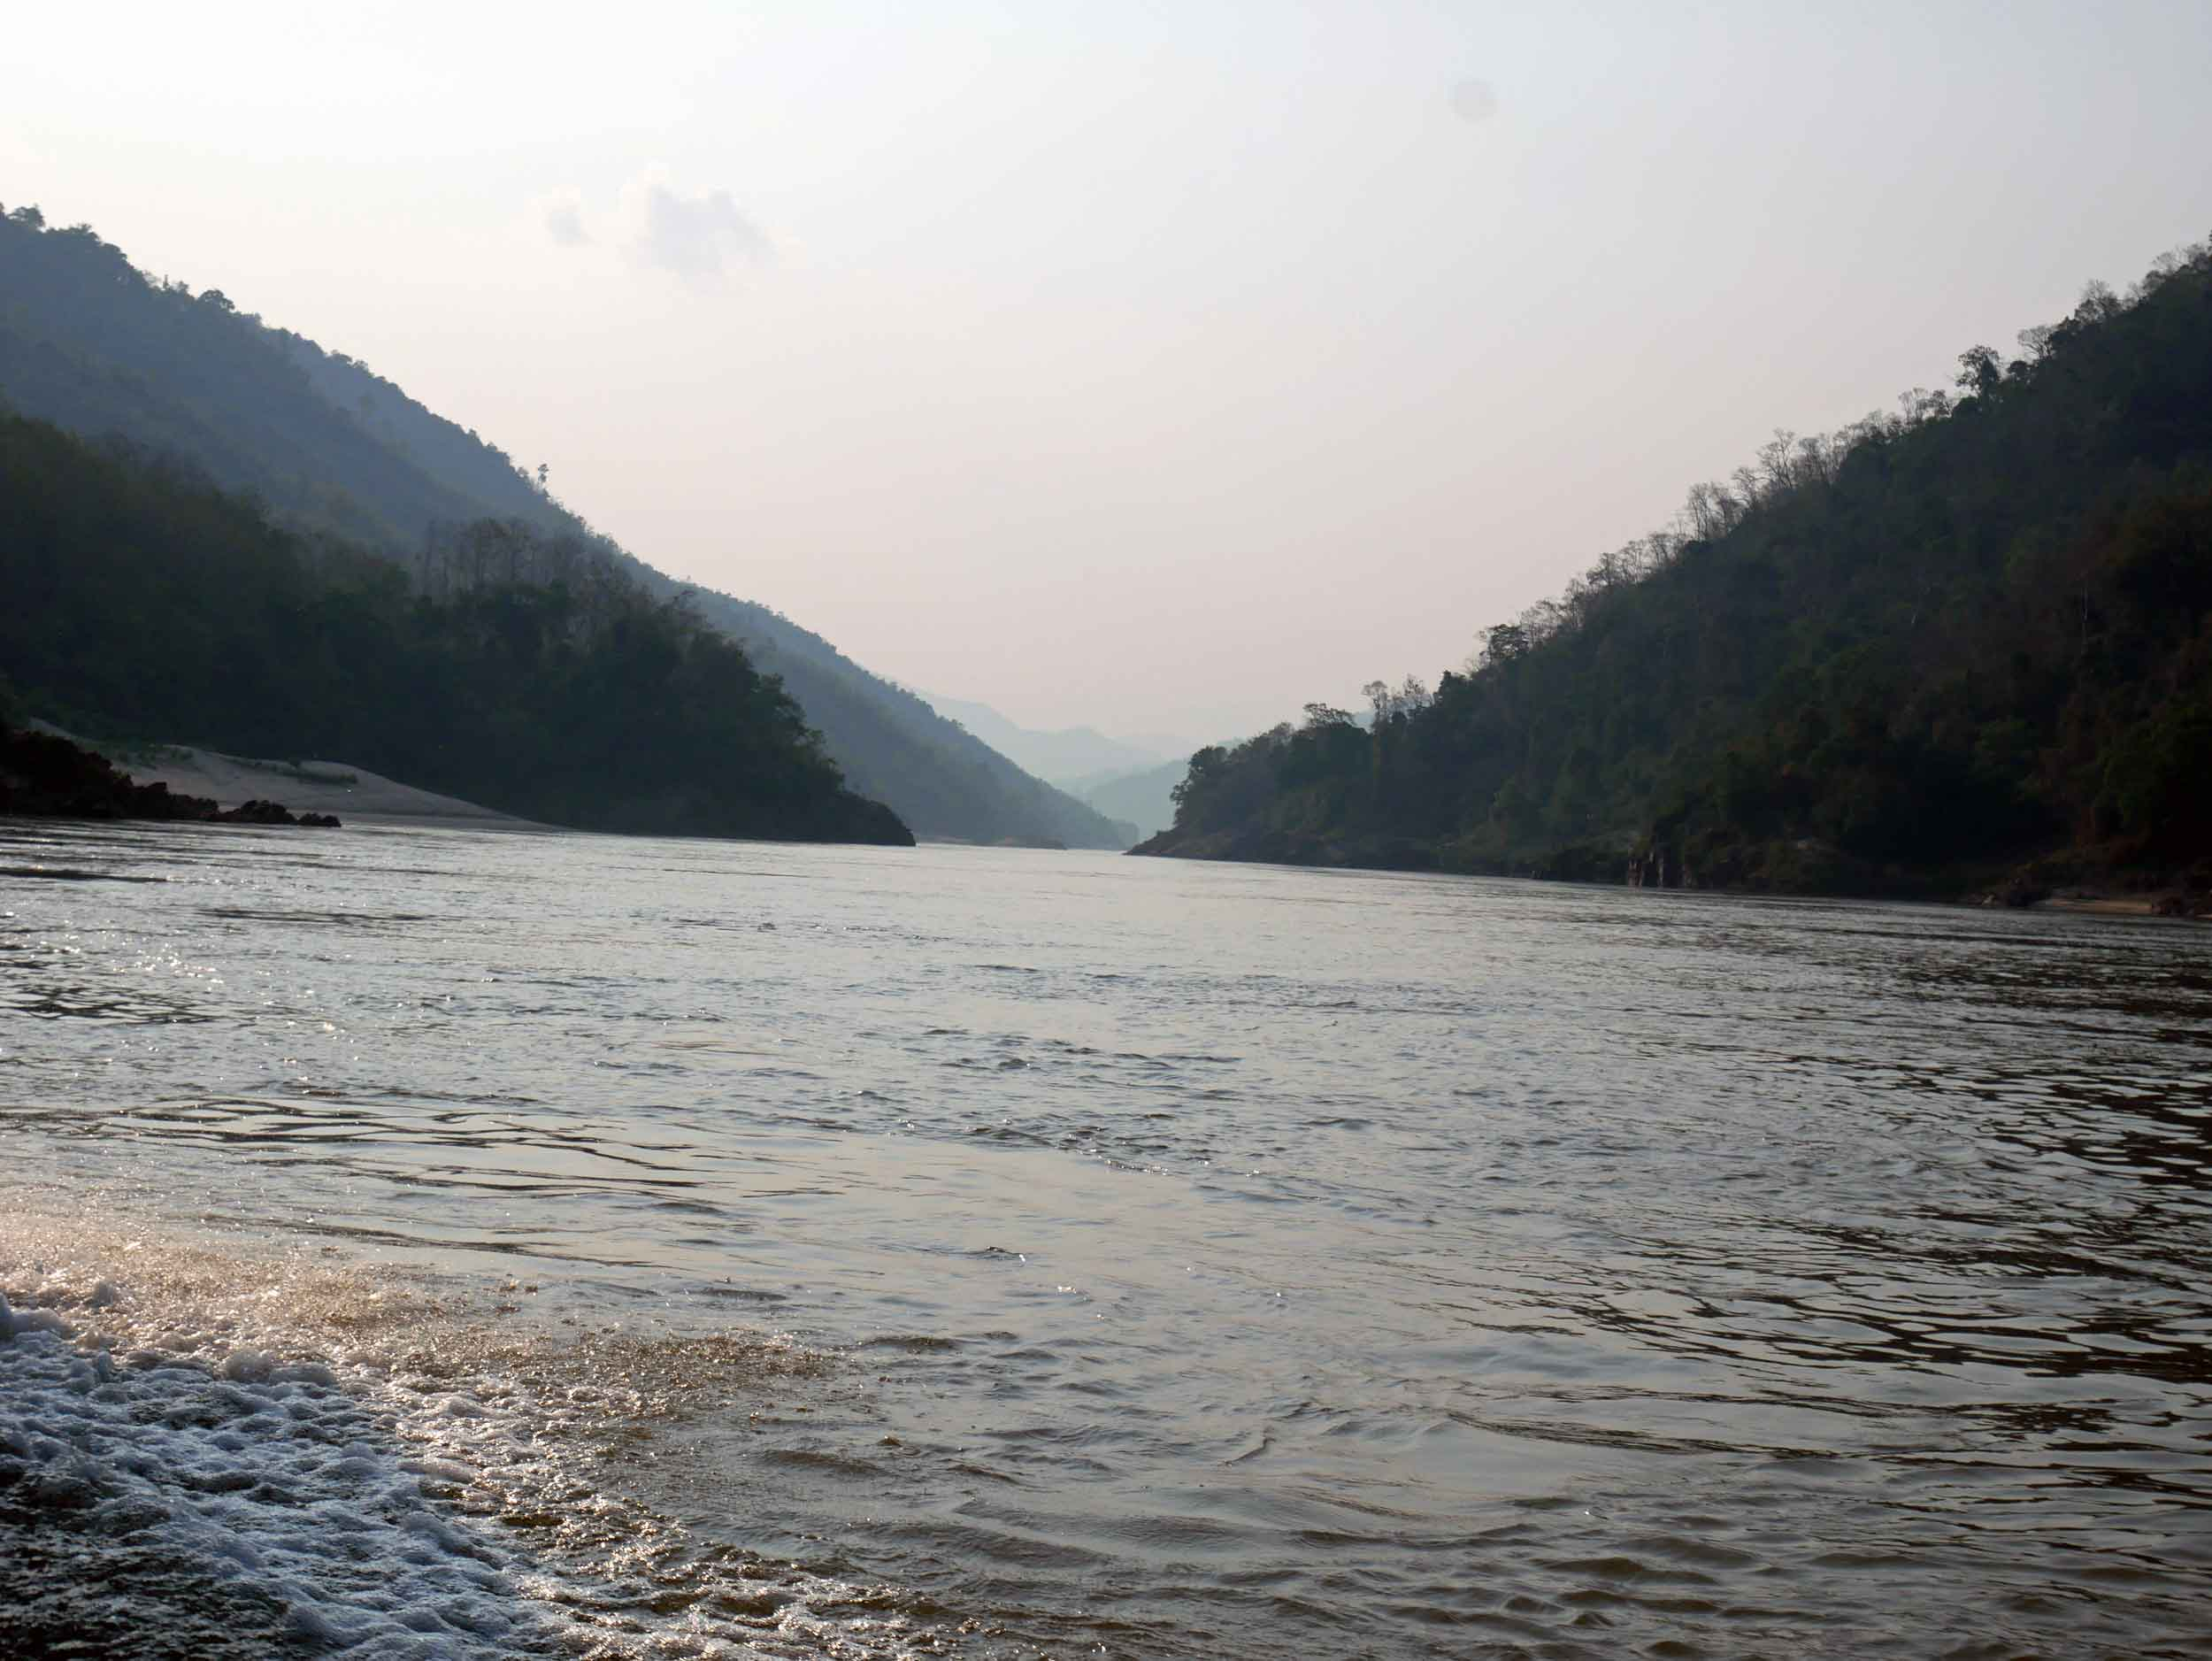 The slow boat was a beautiful way to travel to Thailand, and see another side of Laos away from the towns and tourists.